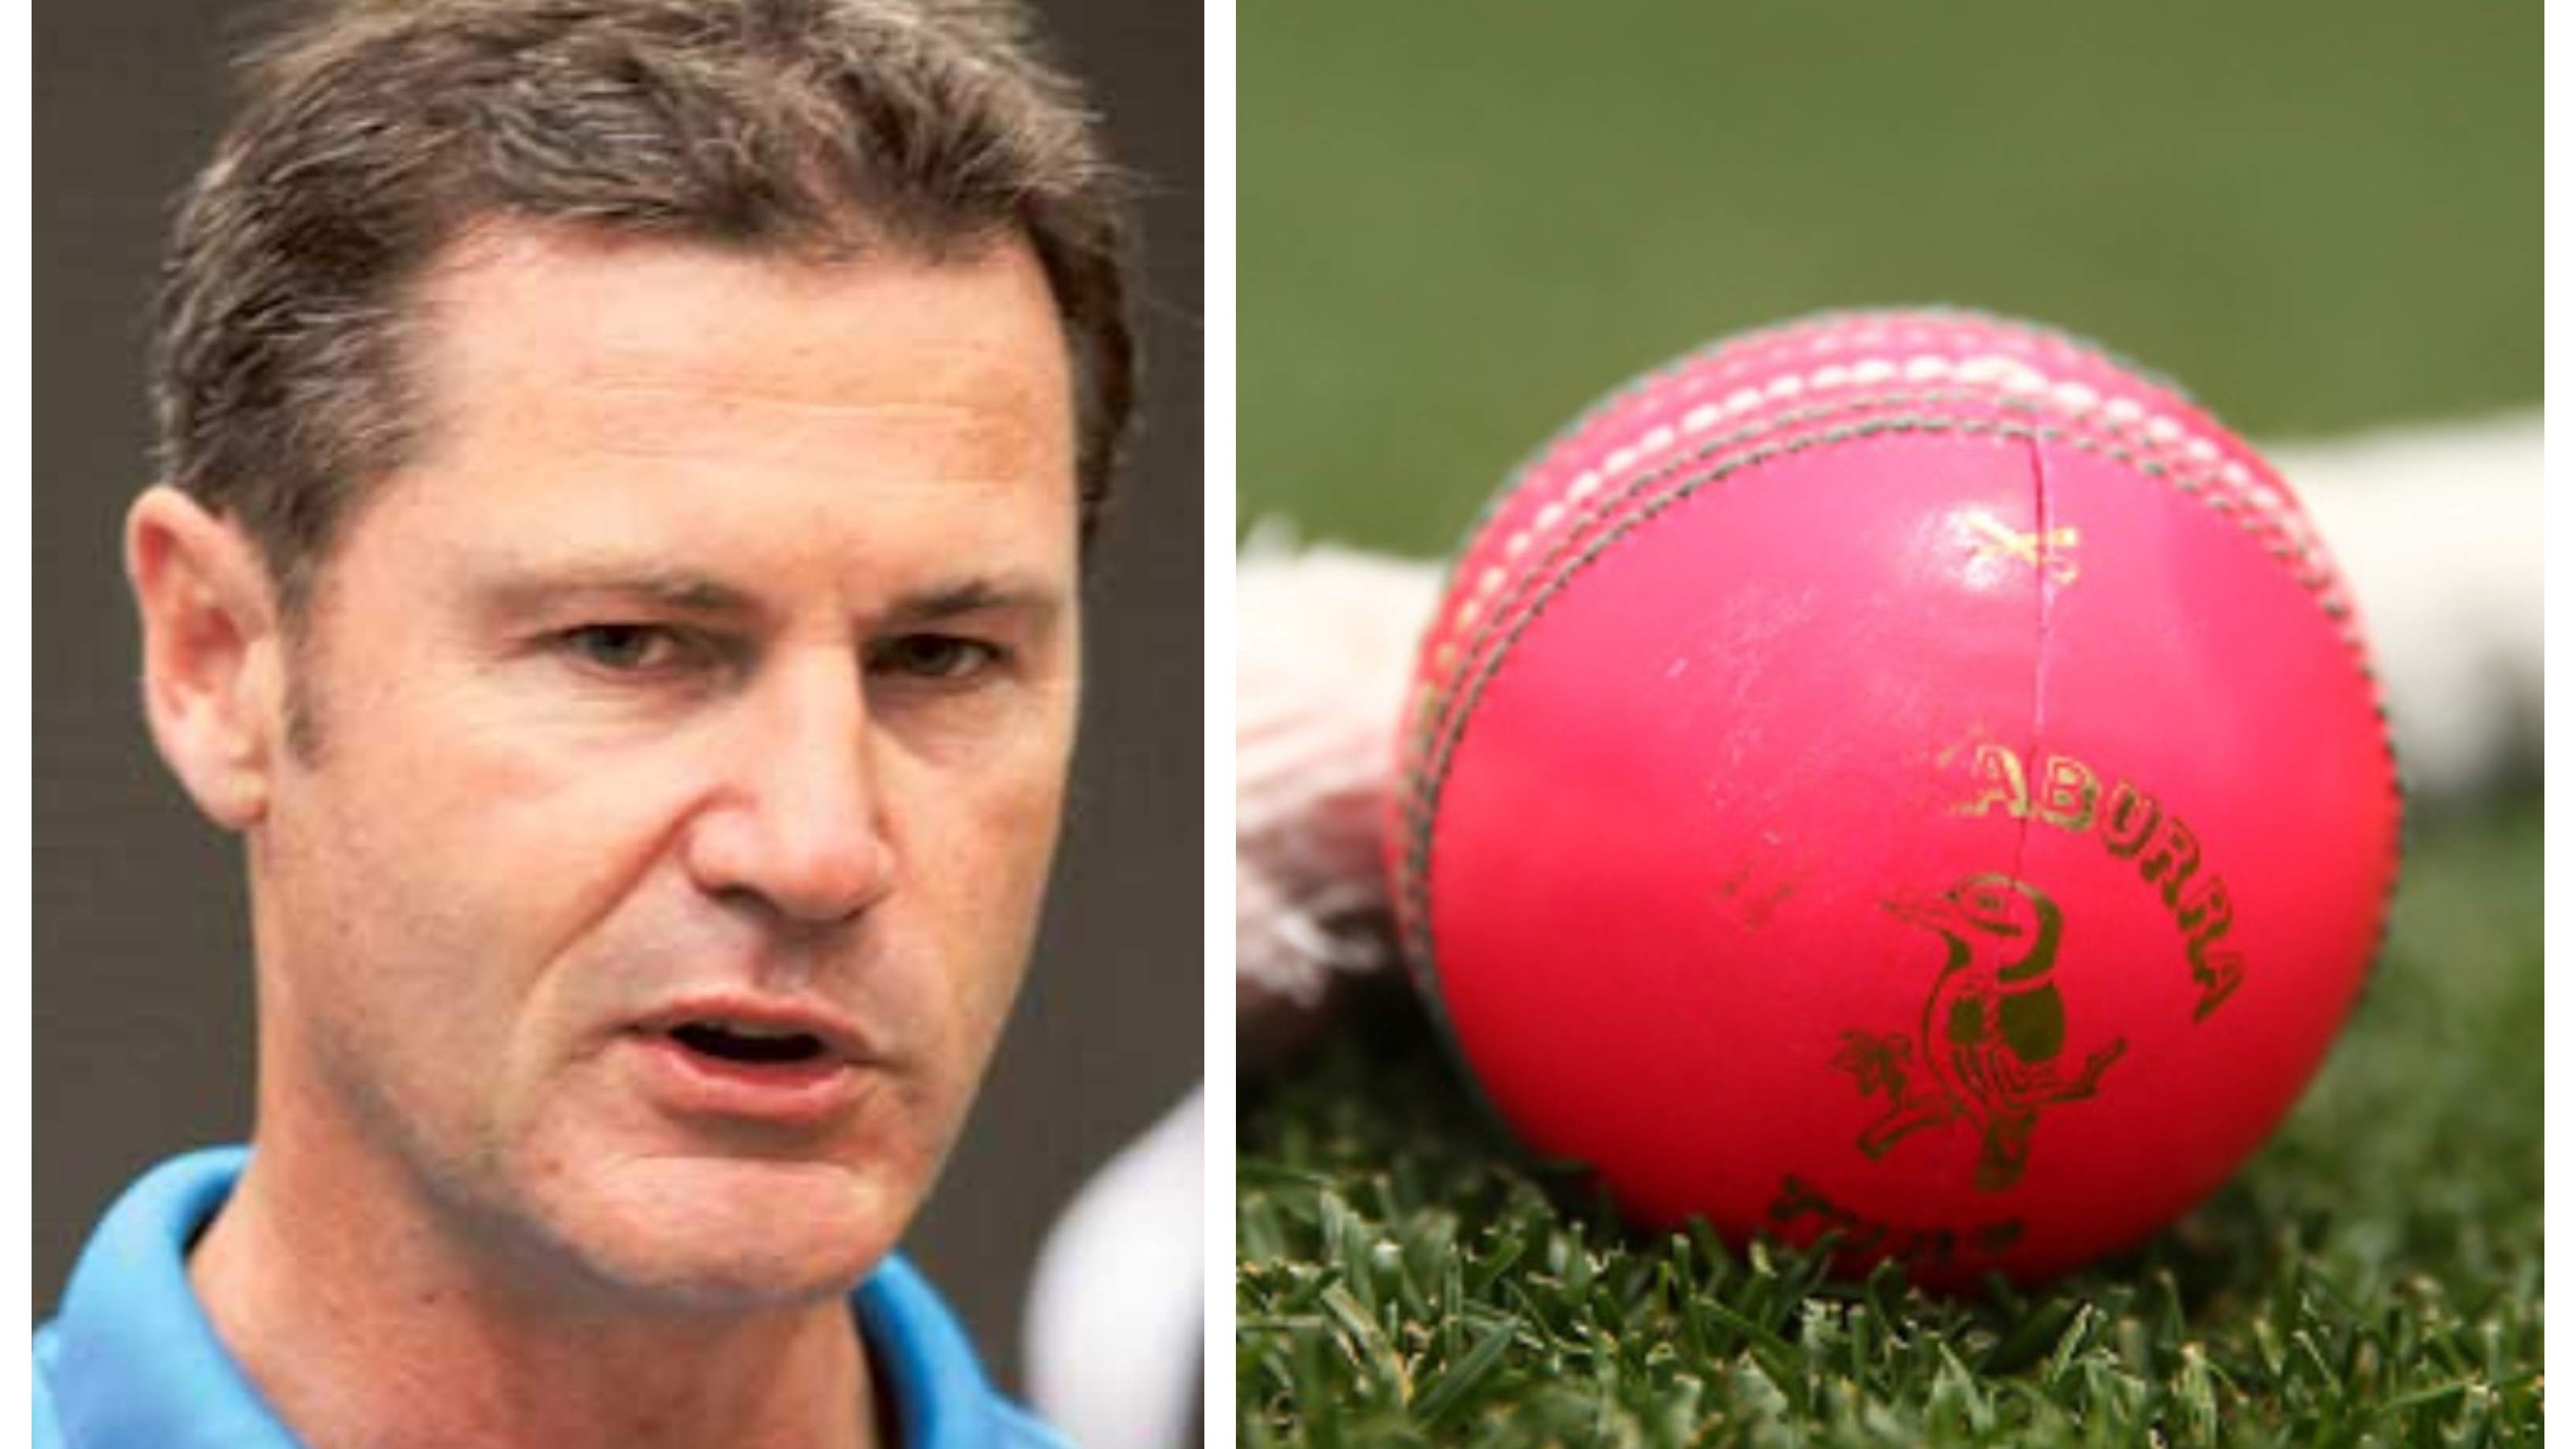 IND v BAN 2019: Simon Taufel advices umpires to attend training sessions for better sighting of pink ball